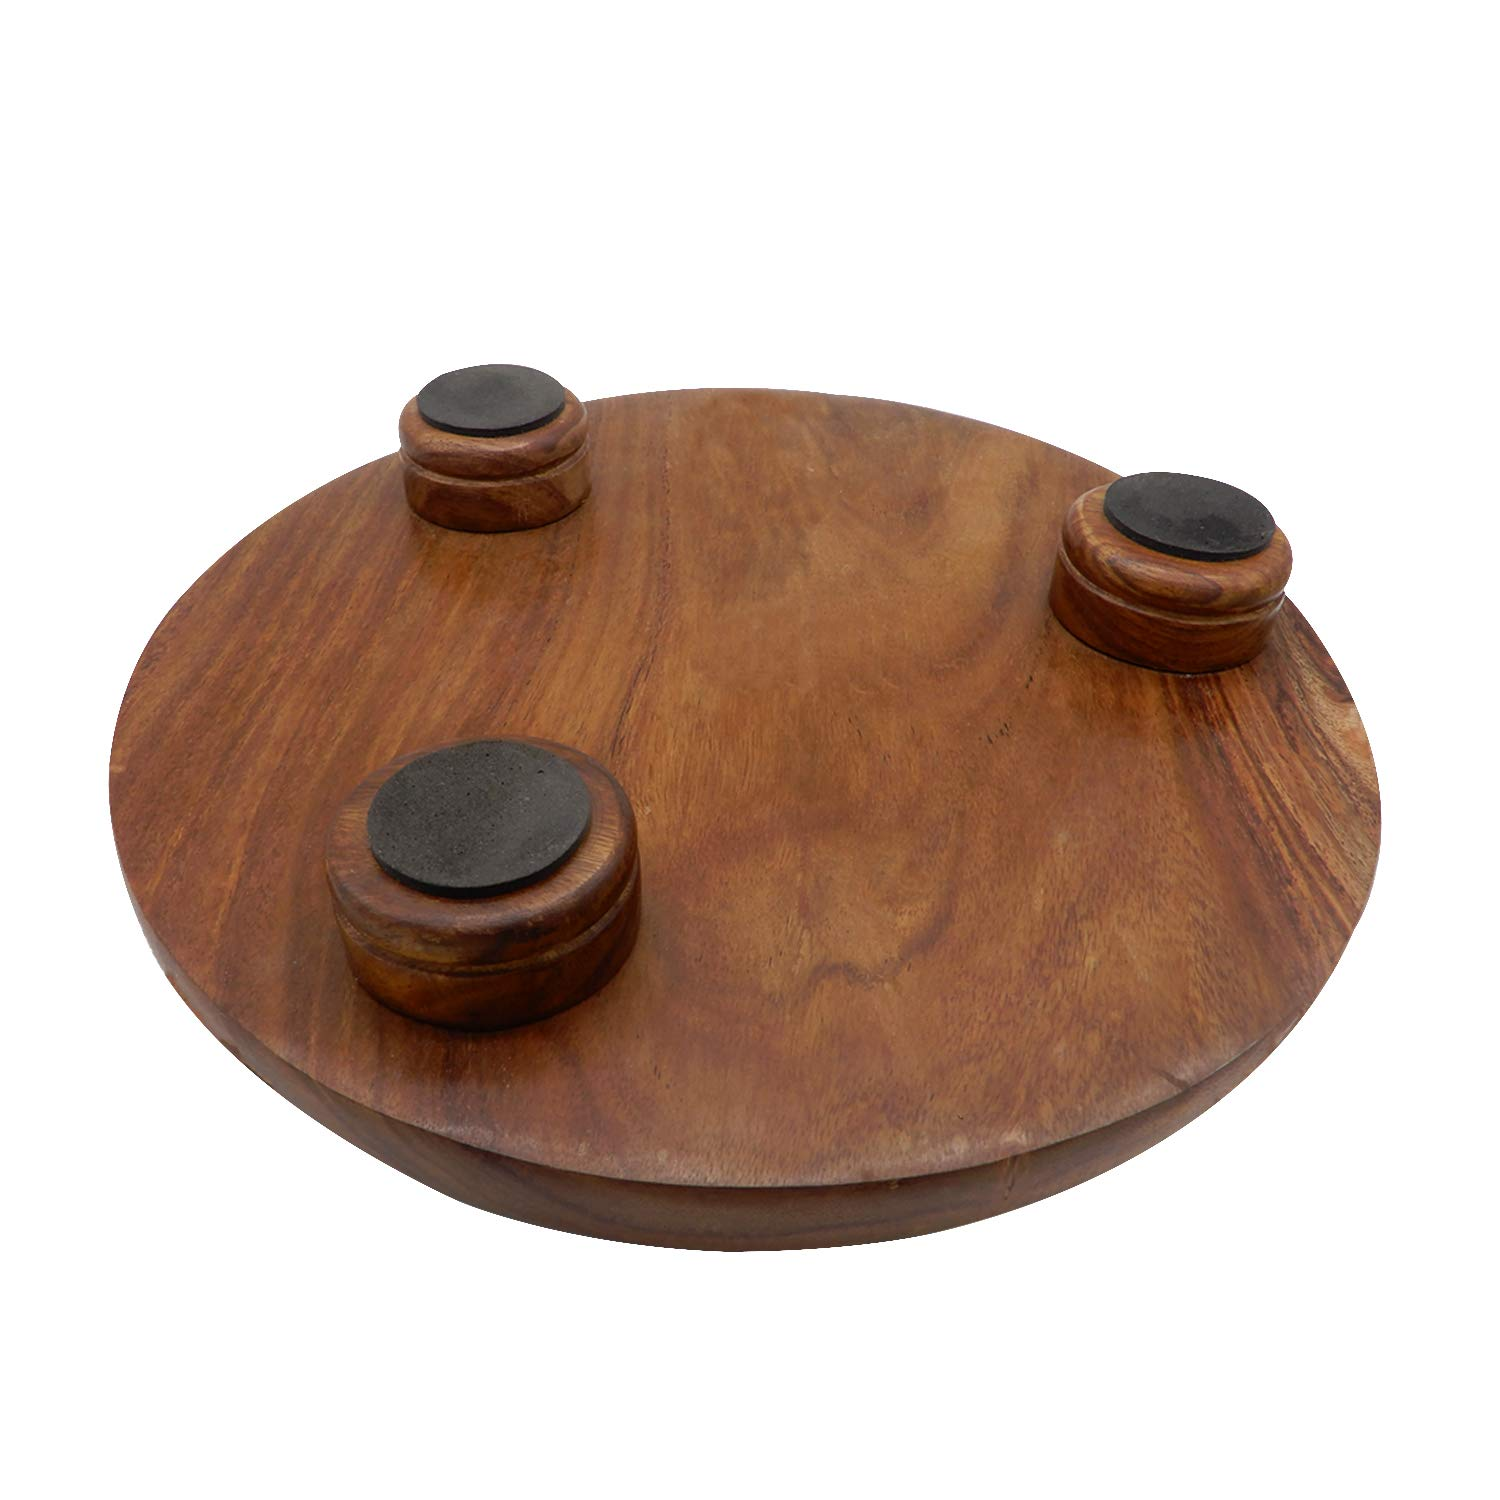 WhopperIndia Handmade Wooden Round Roti Maker Rolling Board with Rolling Pin 27.94 cm